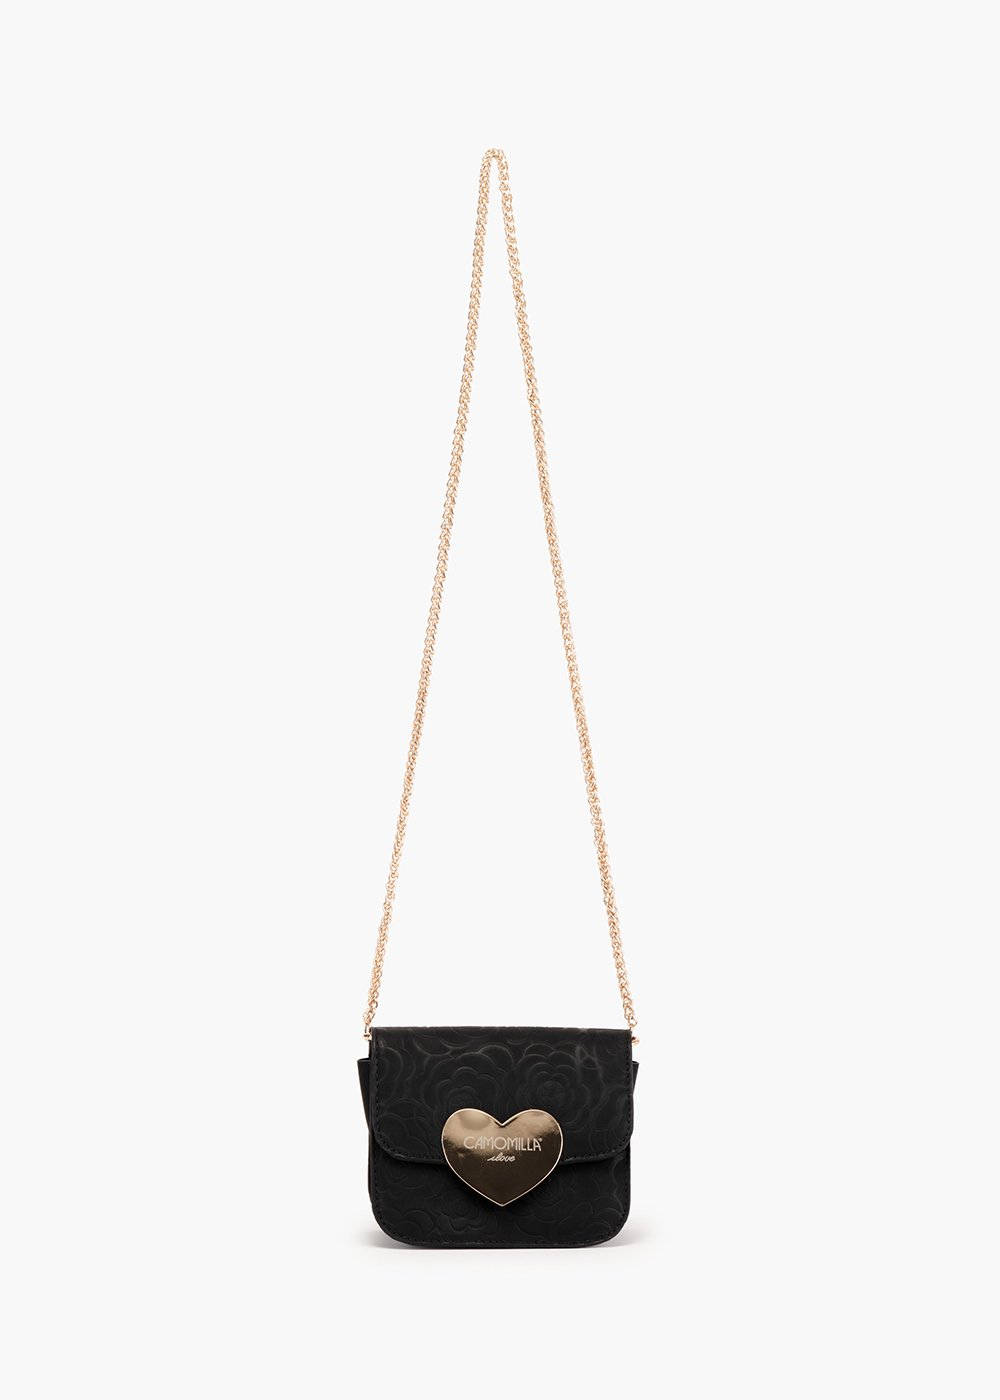 Birch pochette in eco leather with rose design - Black - Woman